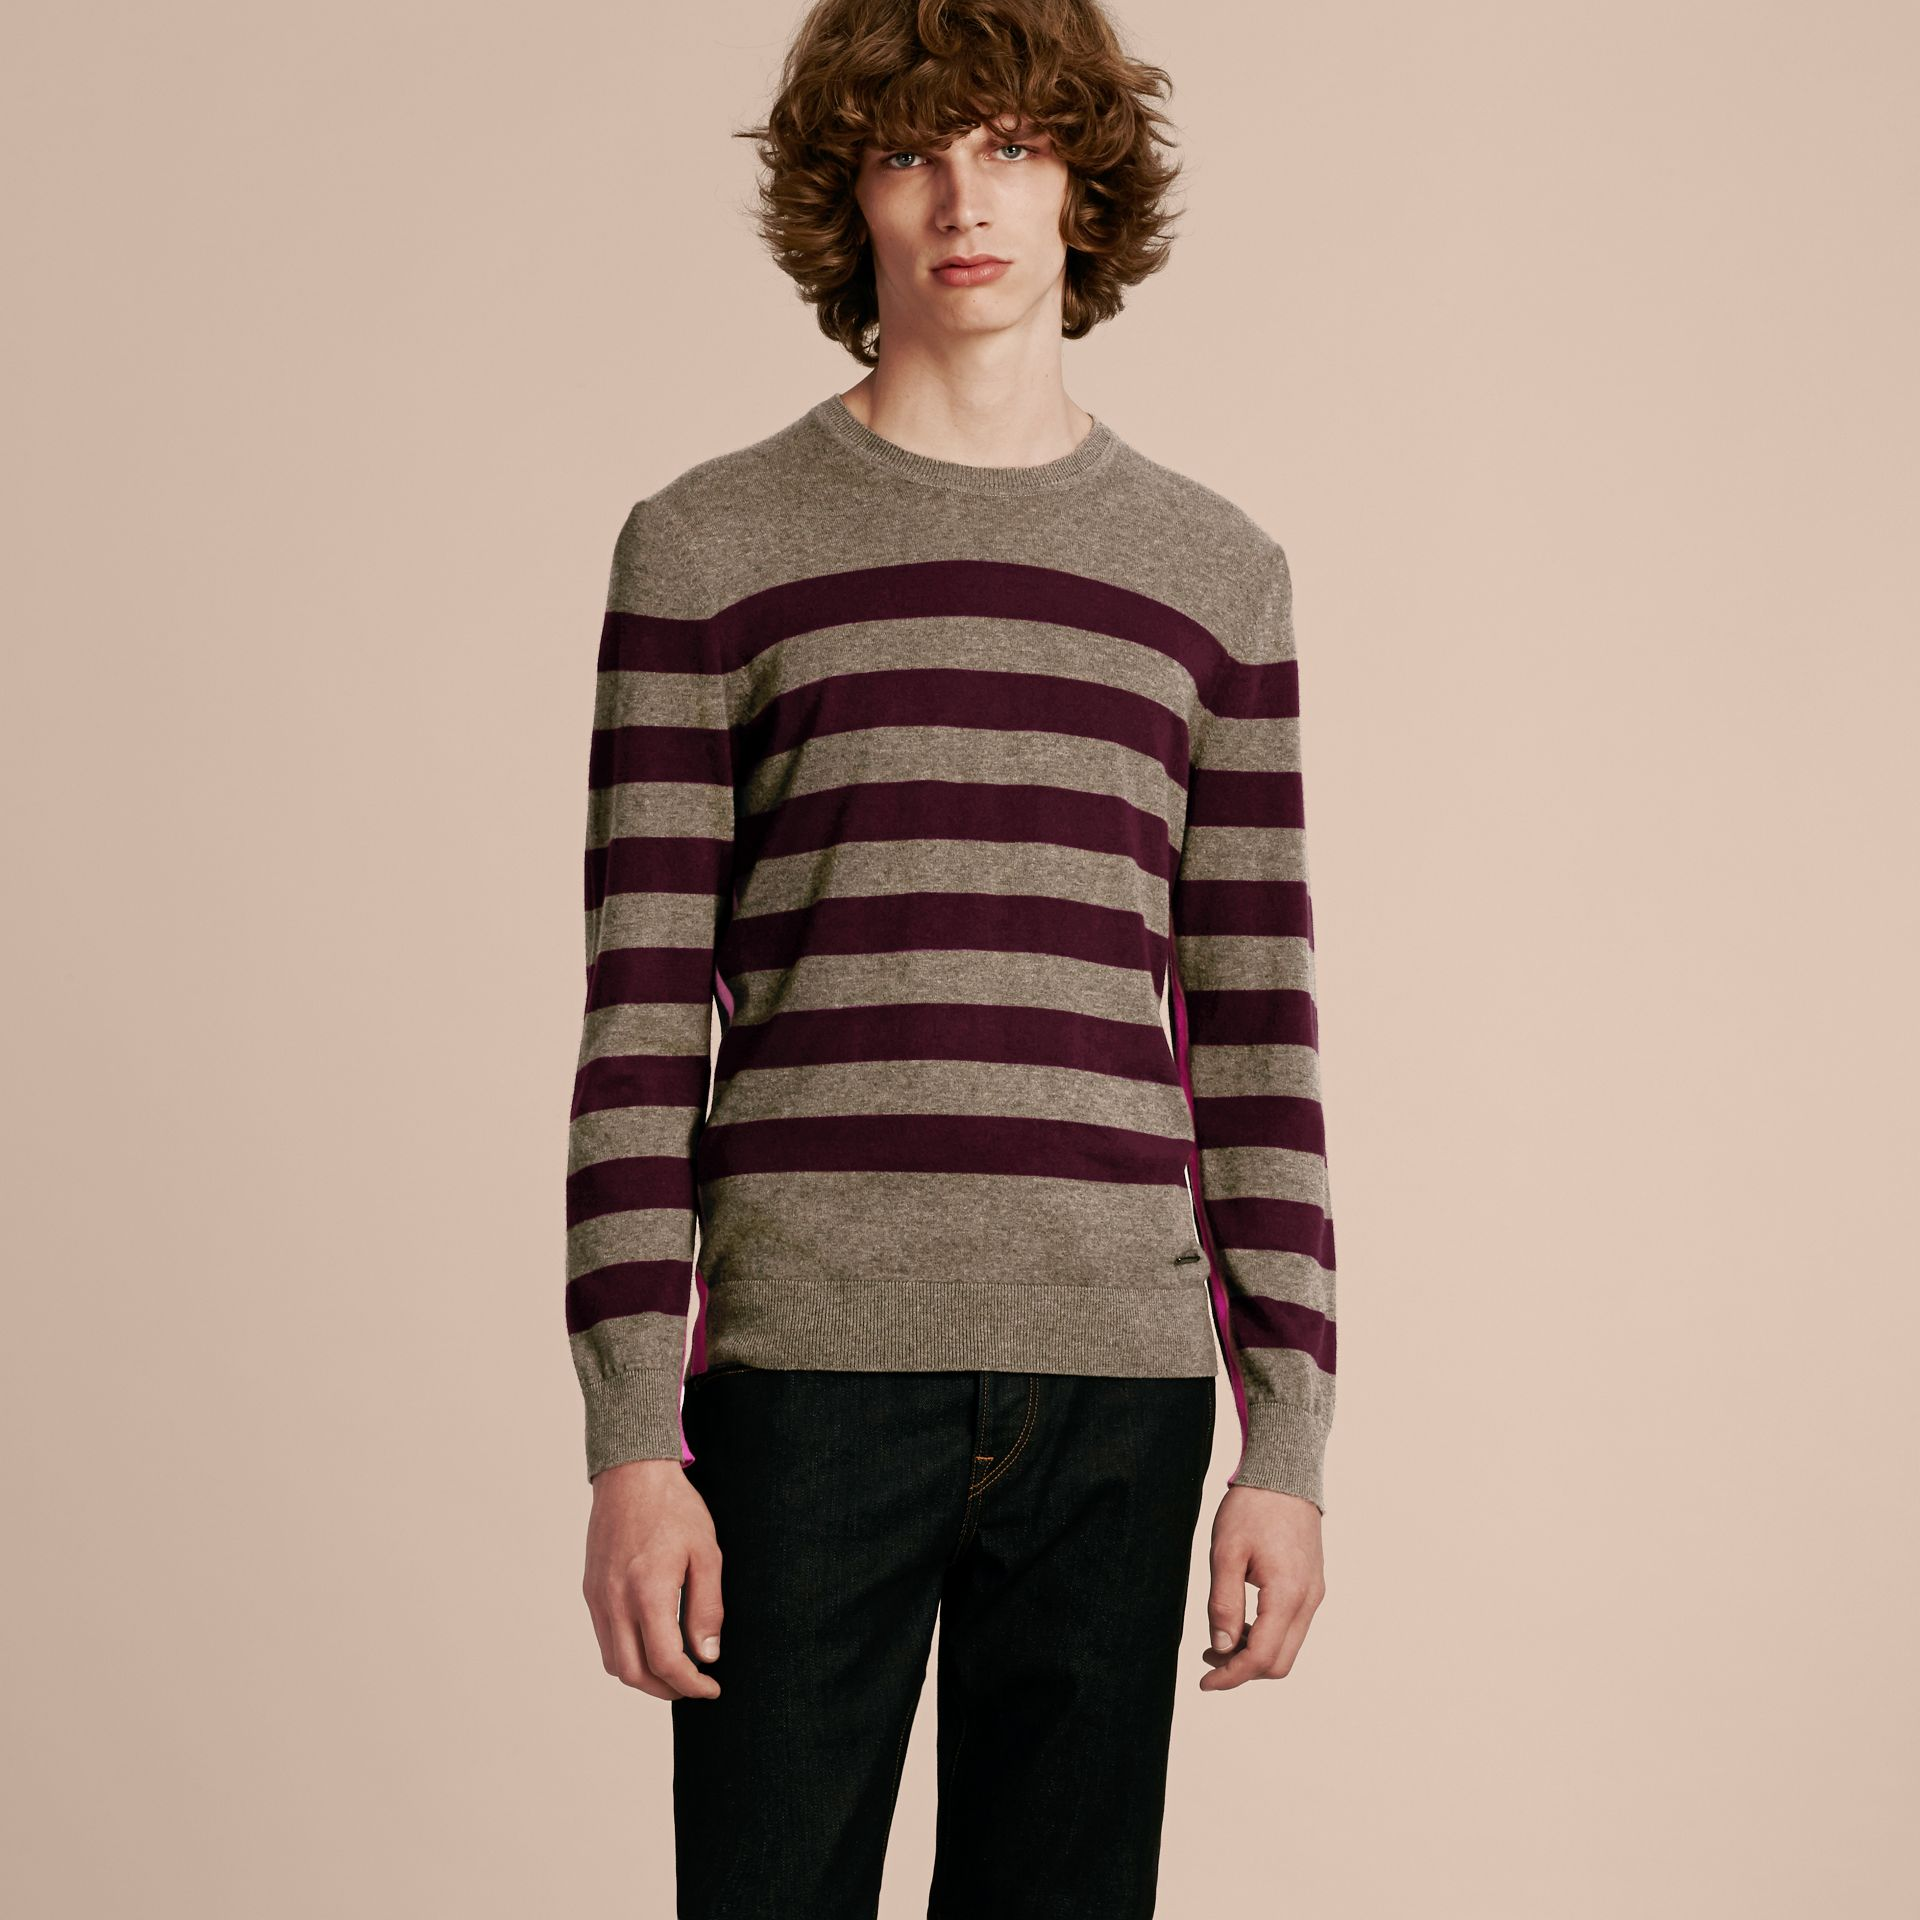 Mink grey Striped Cashmere Cotton Sweater Mink Grey - gallery image 6